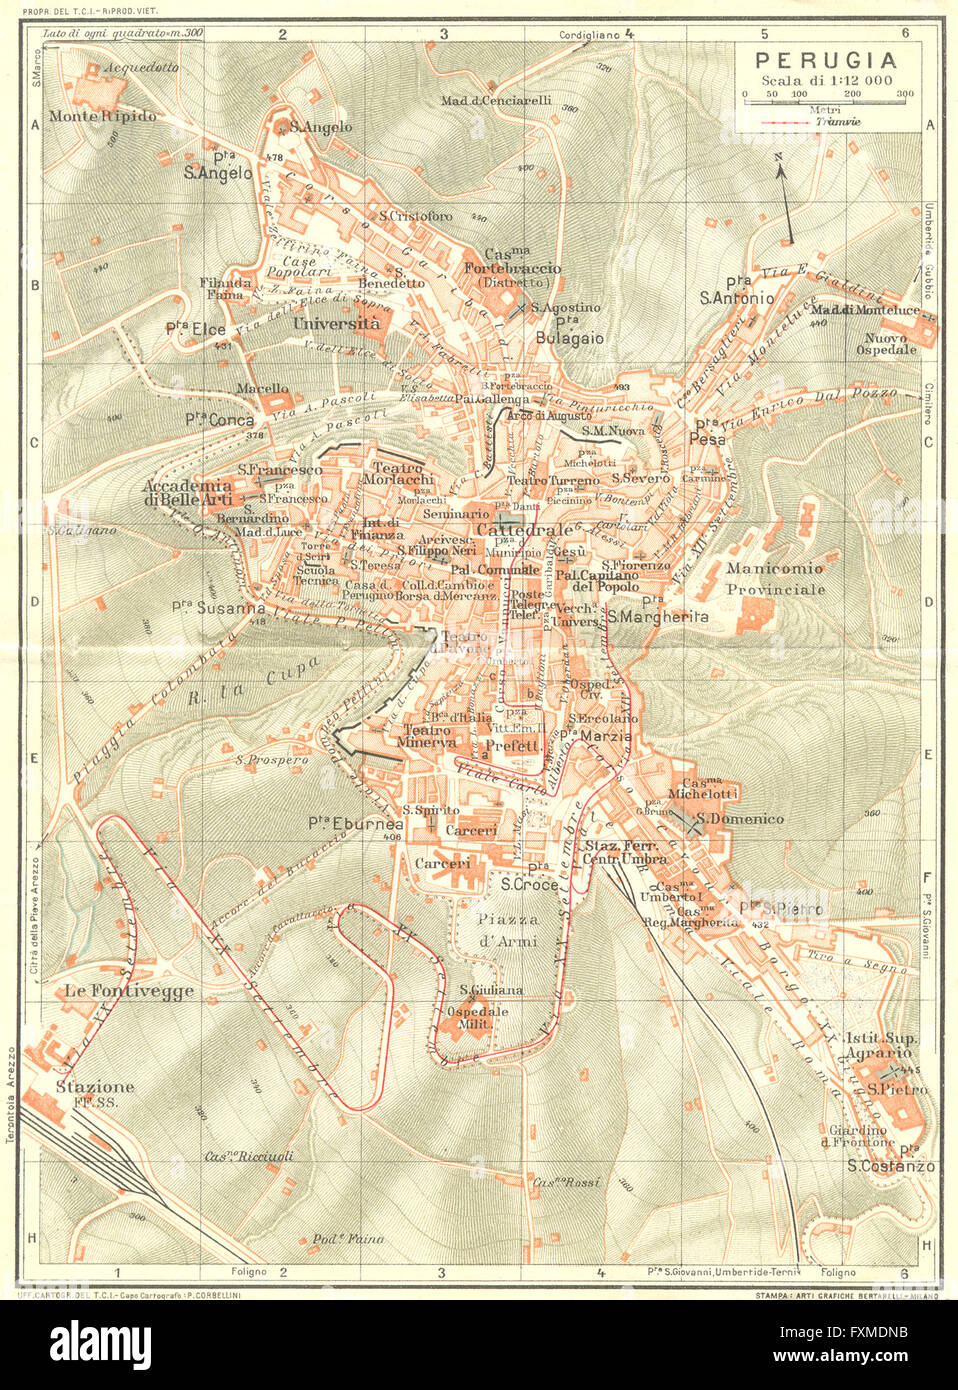 PERUGIA Vintage town city map plan Italy 1927 Stock Photo